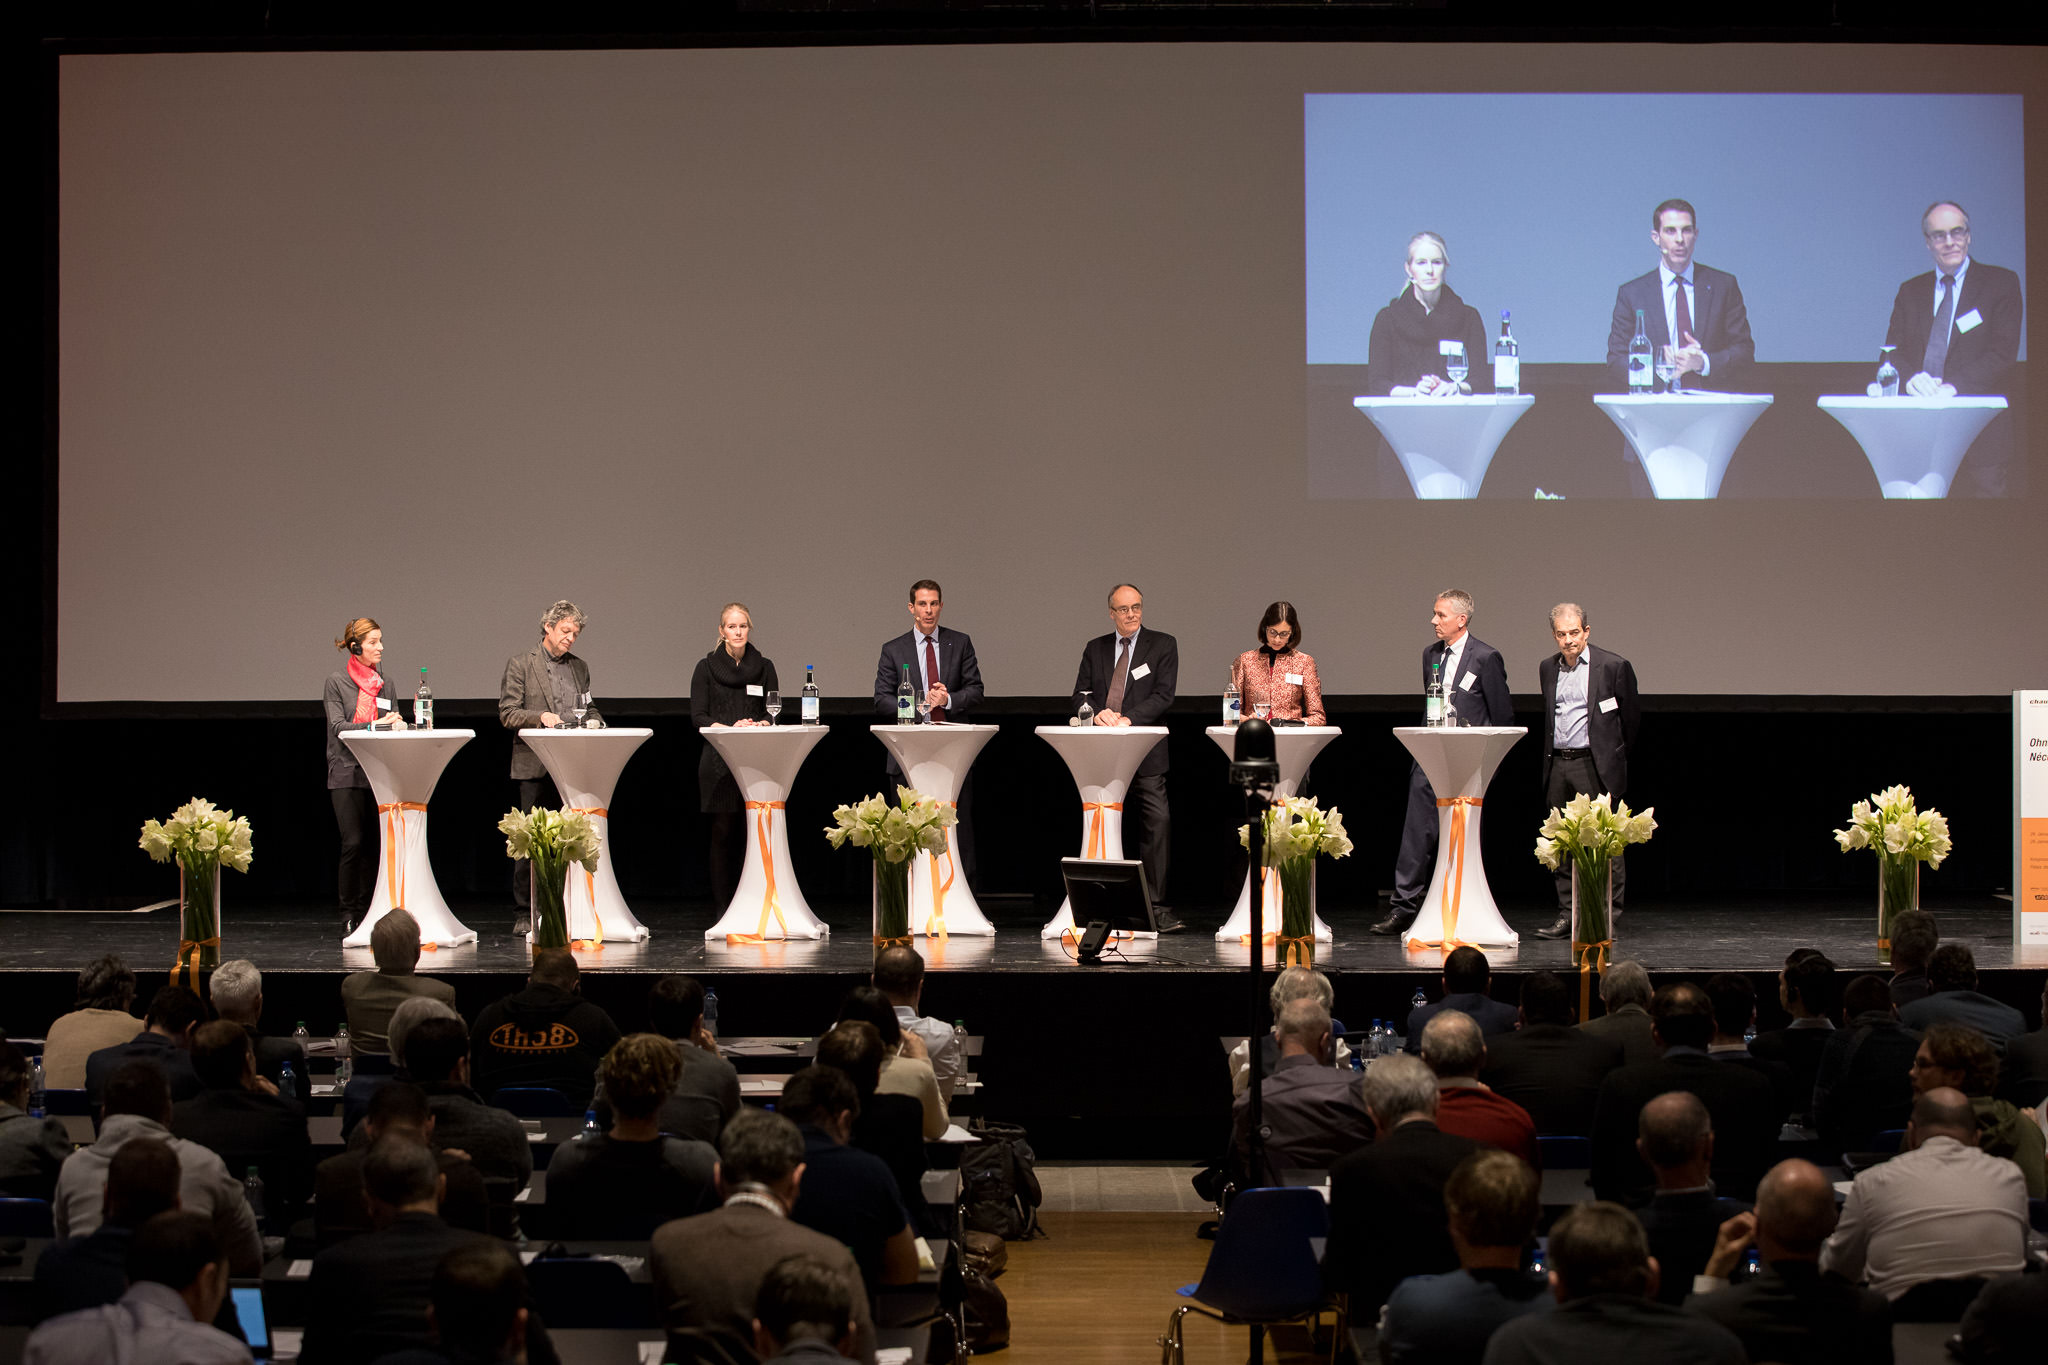 Podiumsdiskussion 1